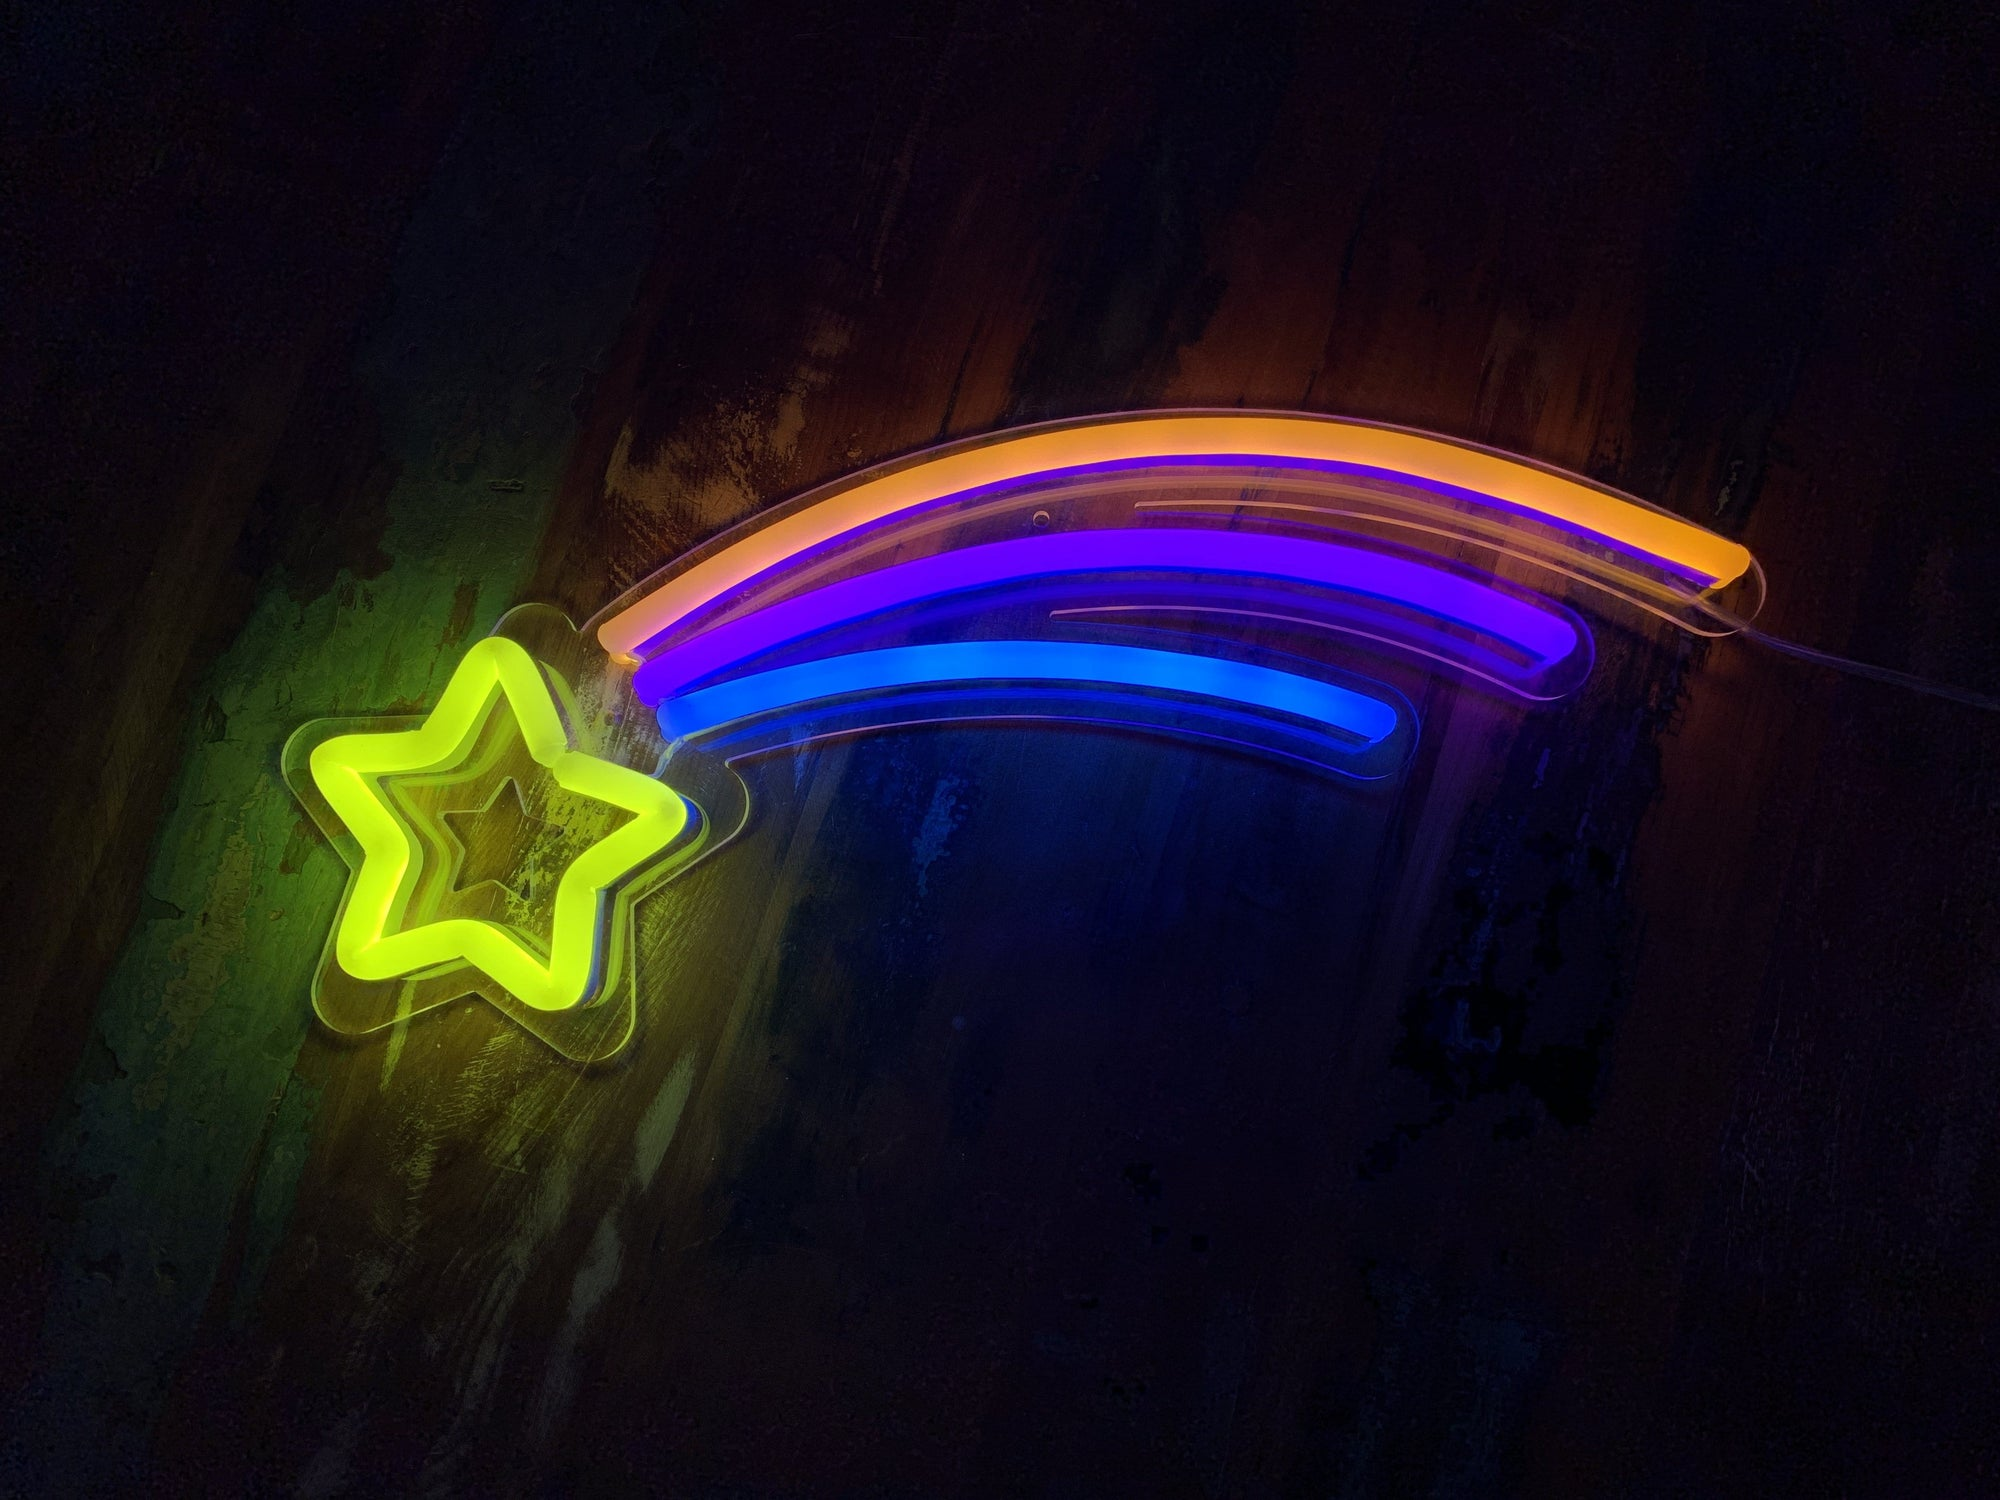 Shooting Star LED Neon Sign